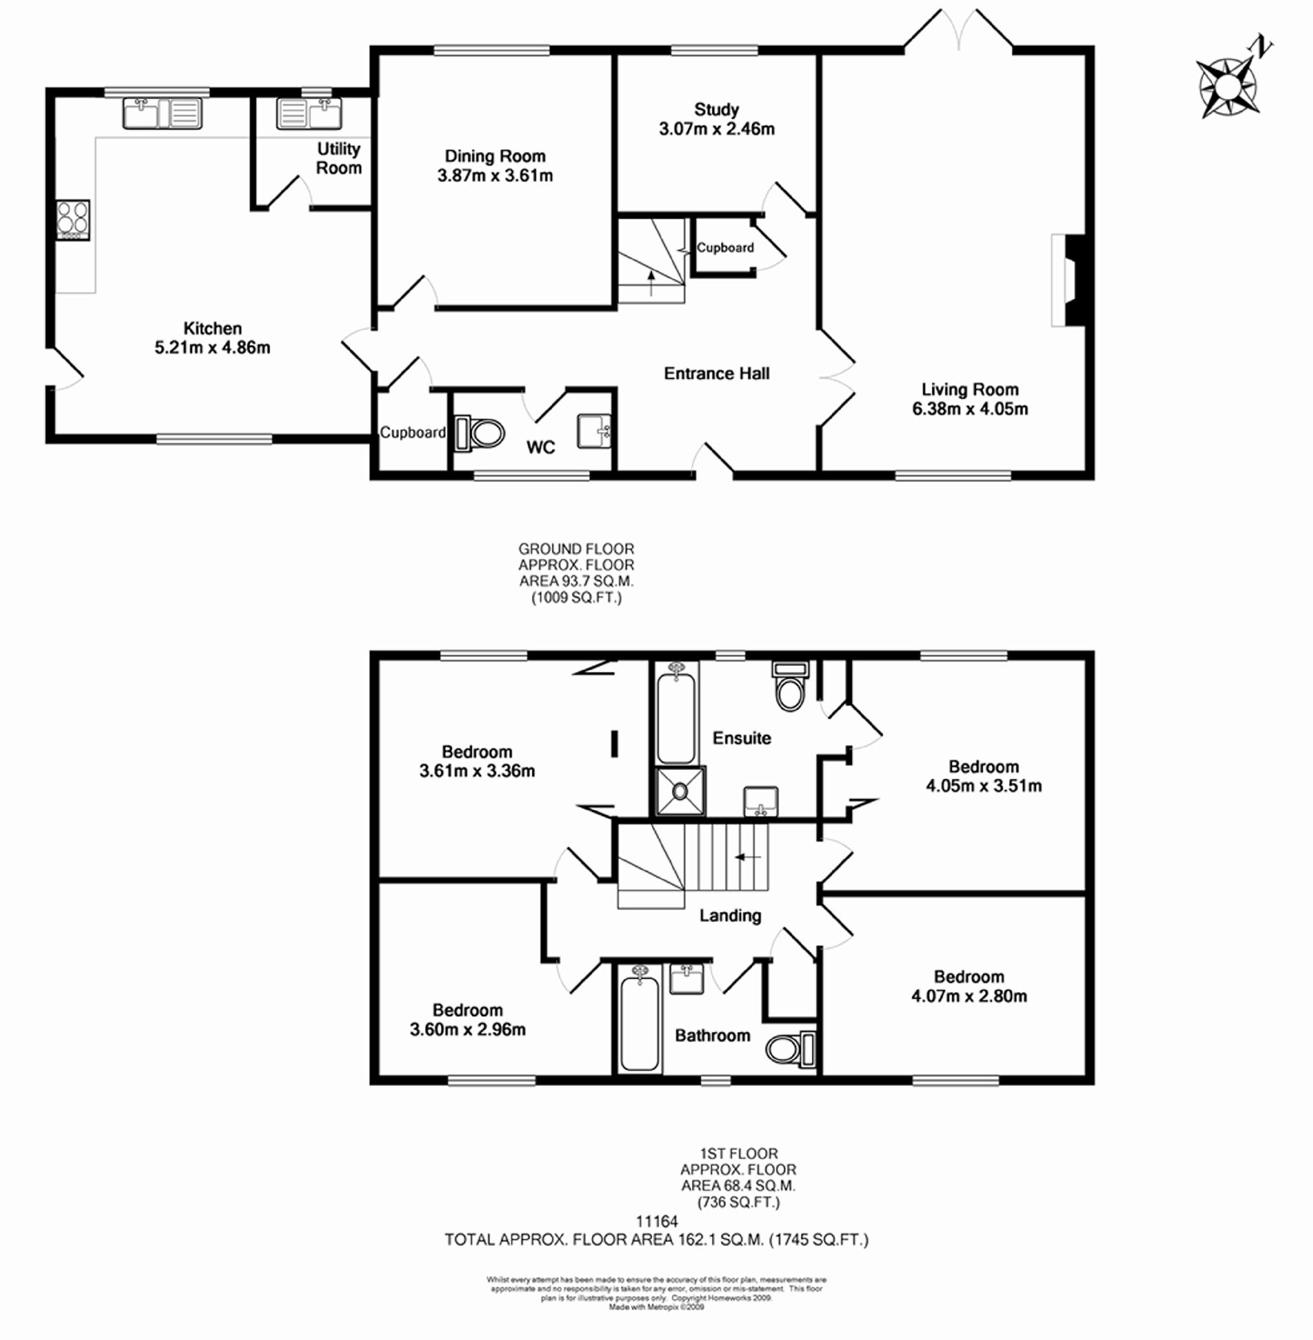 Upper tysoe cv35 ref 11164 banbury for 4 bed house plans uk